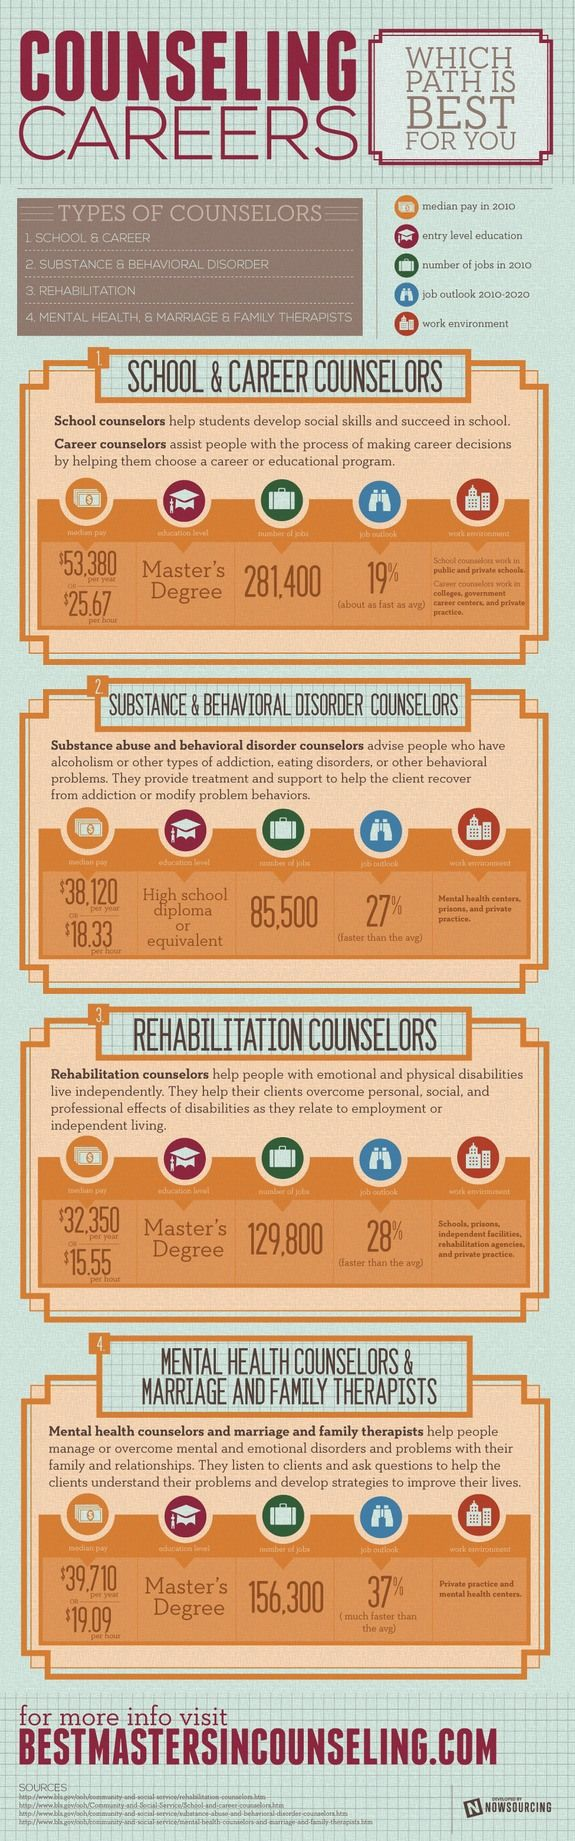 Counselling Careers #Infographic